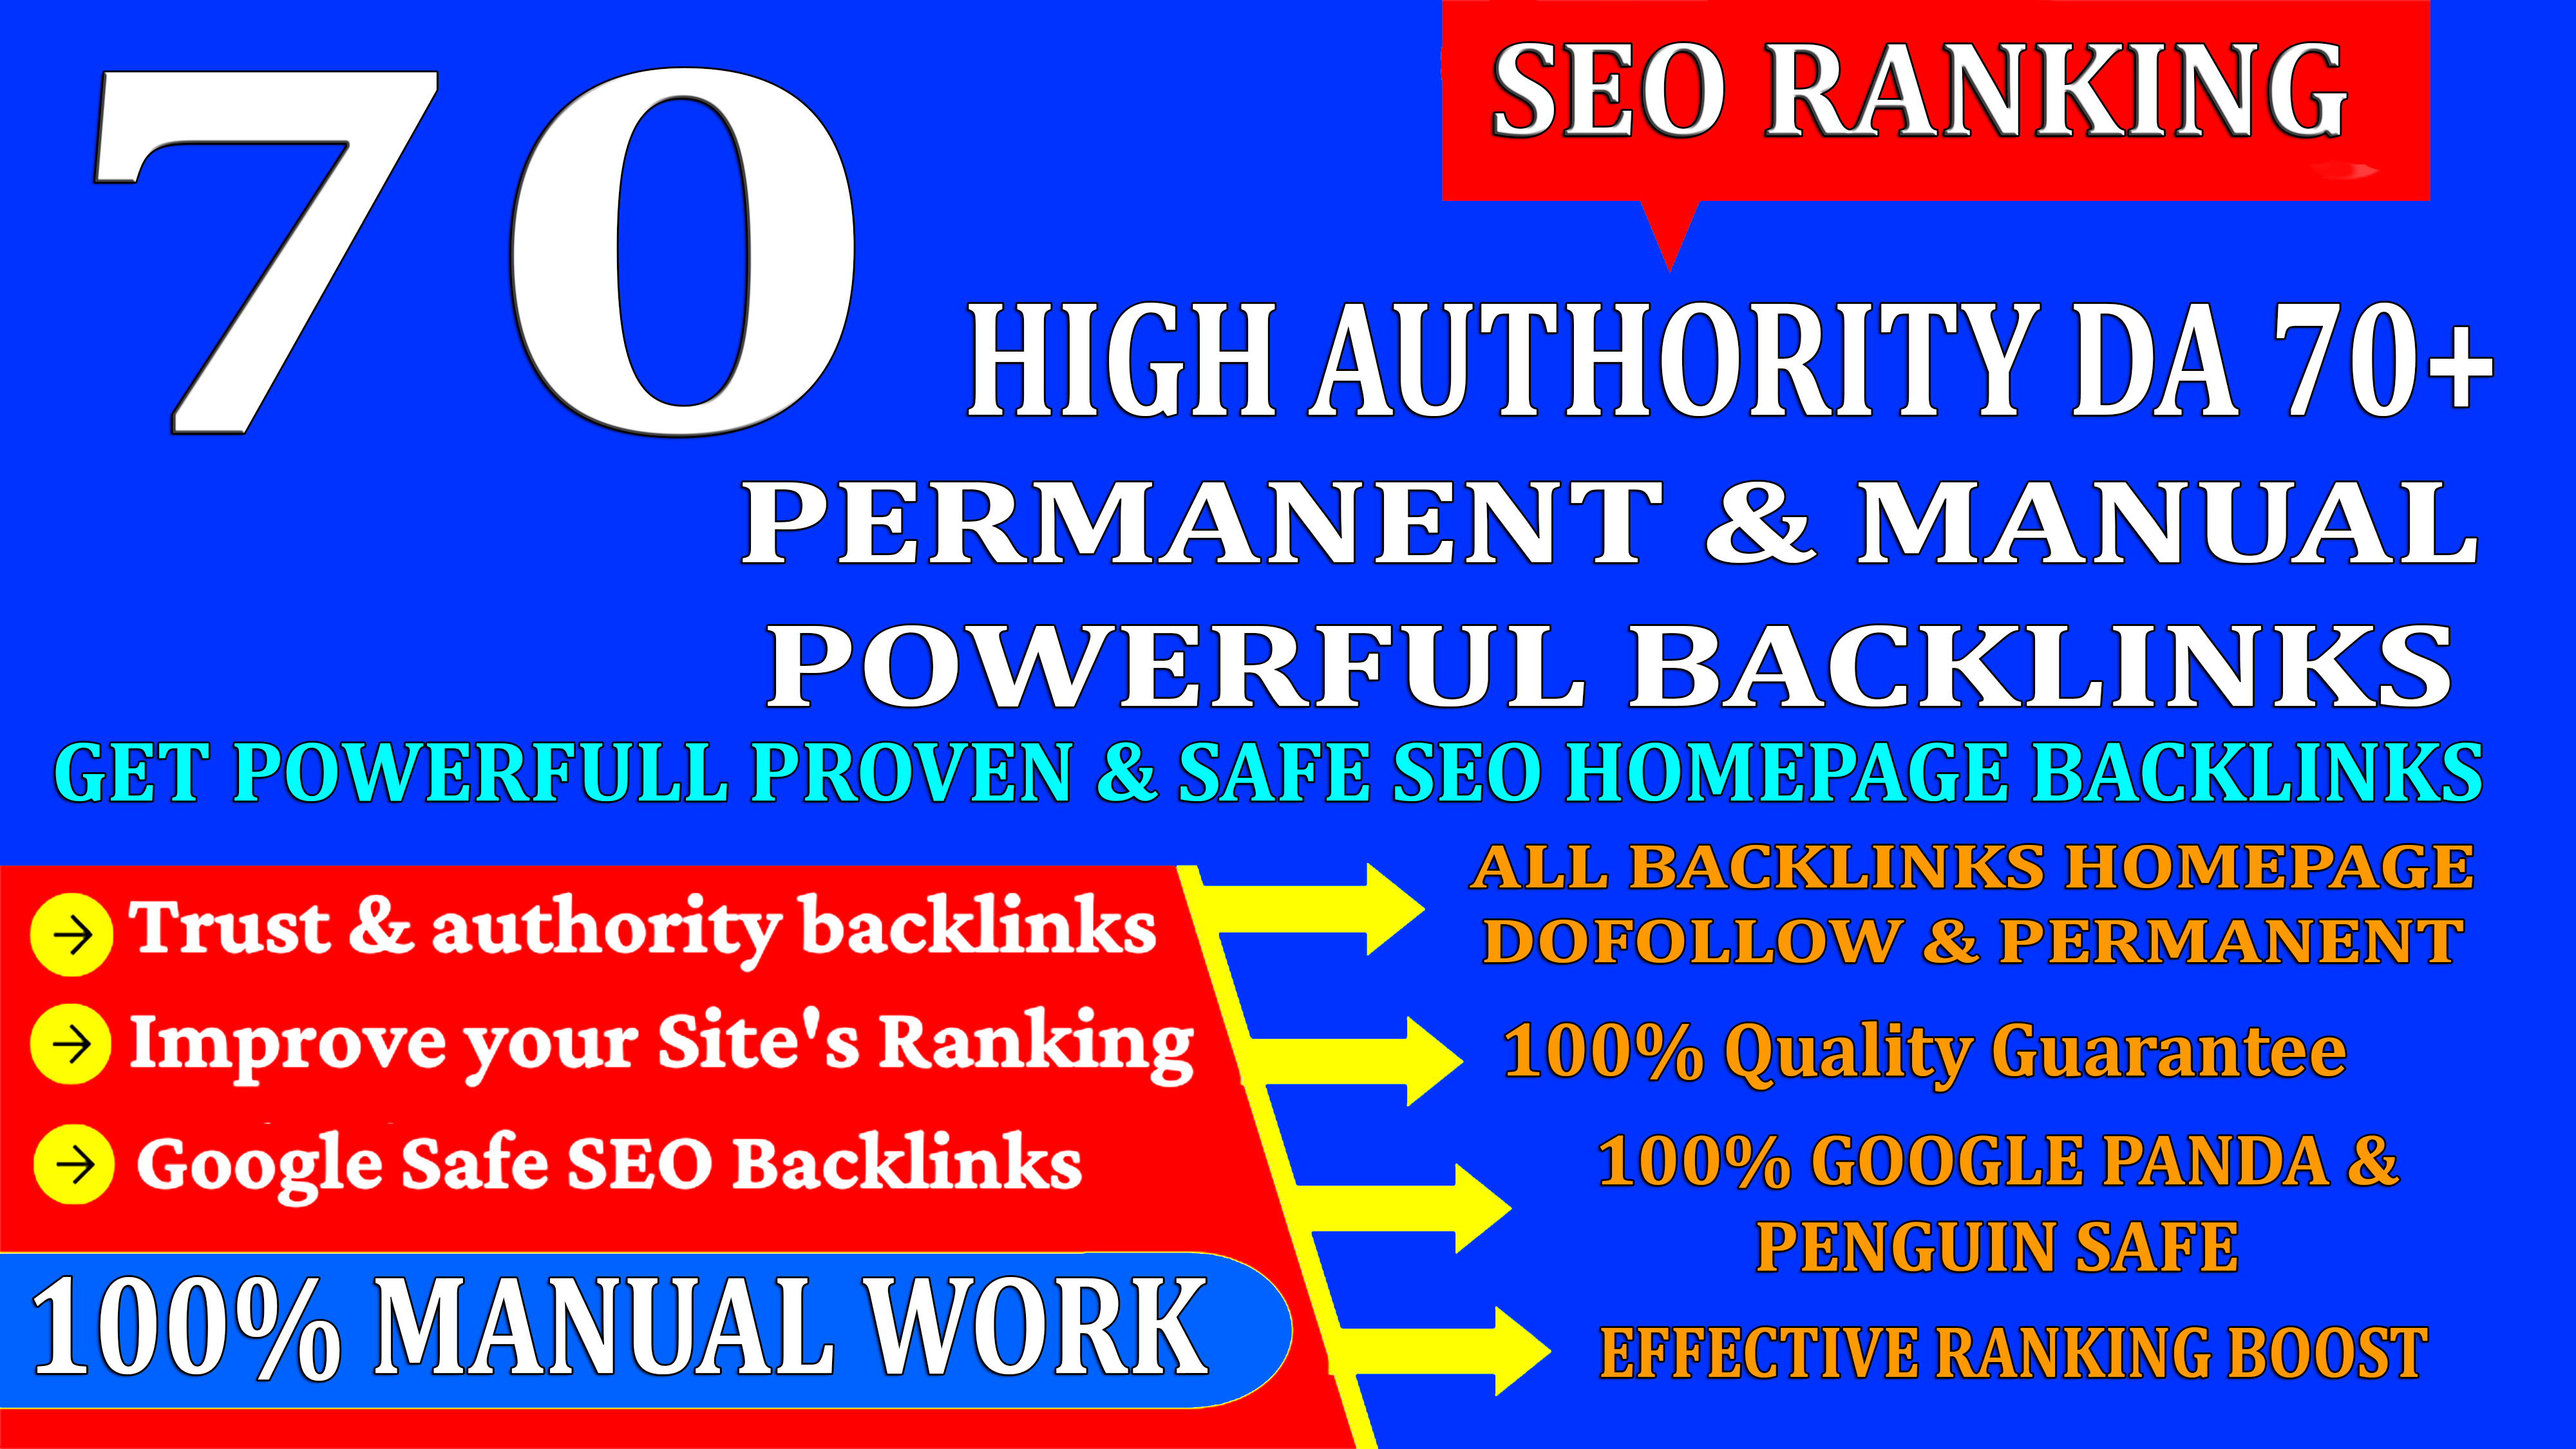 70 High Authority DA 70+ Homepage web2.0 seo Backlink Permanent & Dofollow With unique website